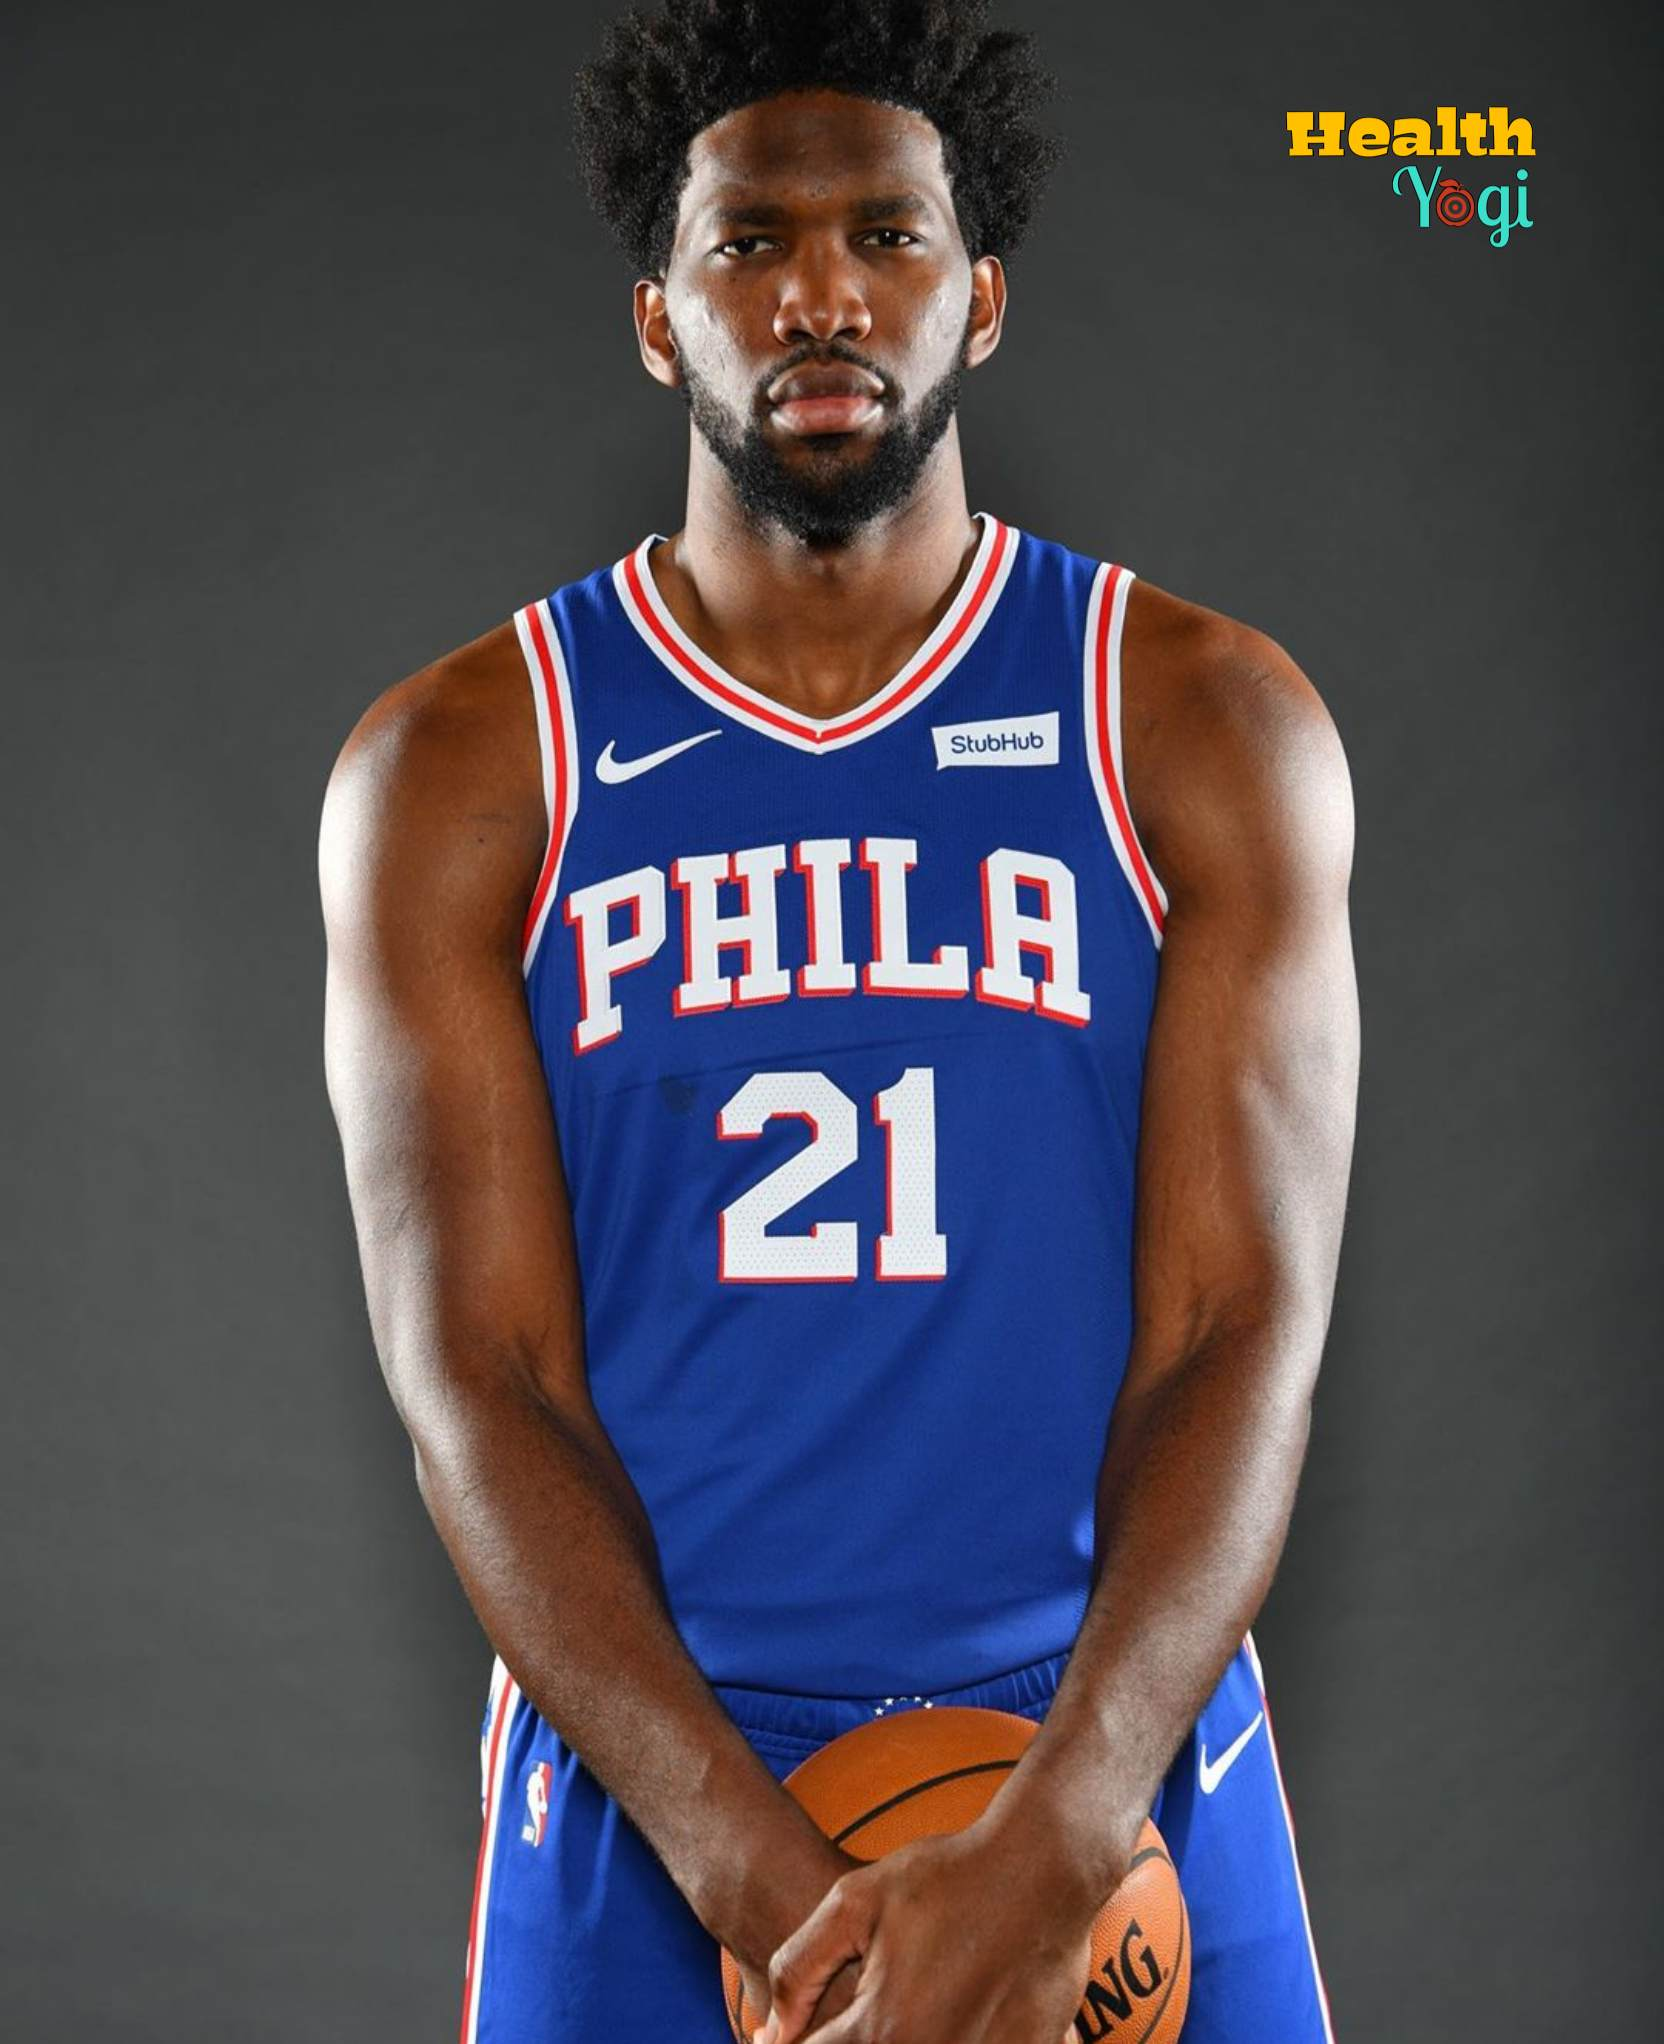 Joel Embiid Workout Routine and Diet plan | Age | height | Body Measurements | Workout Videos | Instagram Photos 2019, Joel Embiid exercise plan, Joel Embiid meal plan, Joel Embiid gym routine, Joel Embiid workout, Joel Embiid training video, Joel Embiid fitness, Joel Embiid fitness regime, Joel Embiid workout video, Joel Embiid diet plan, Joel Embiid meal plan, Joel Embiid instagram photos, Joel Embiid instagram, Joel Embiid workout videos